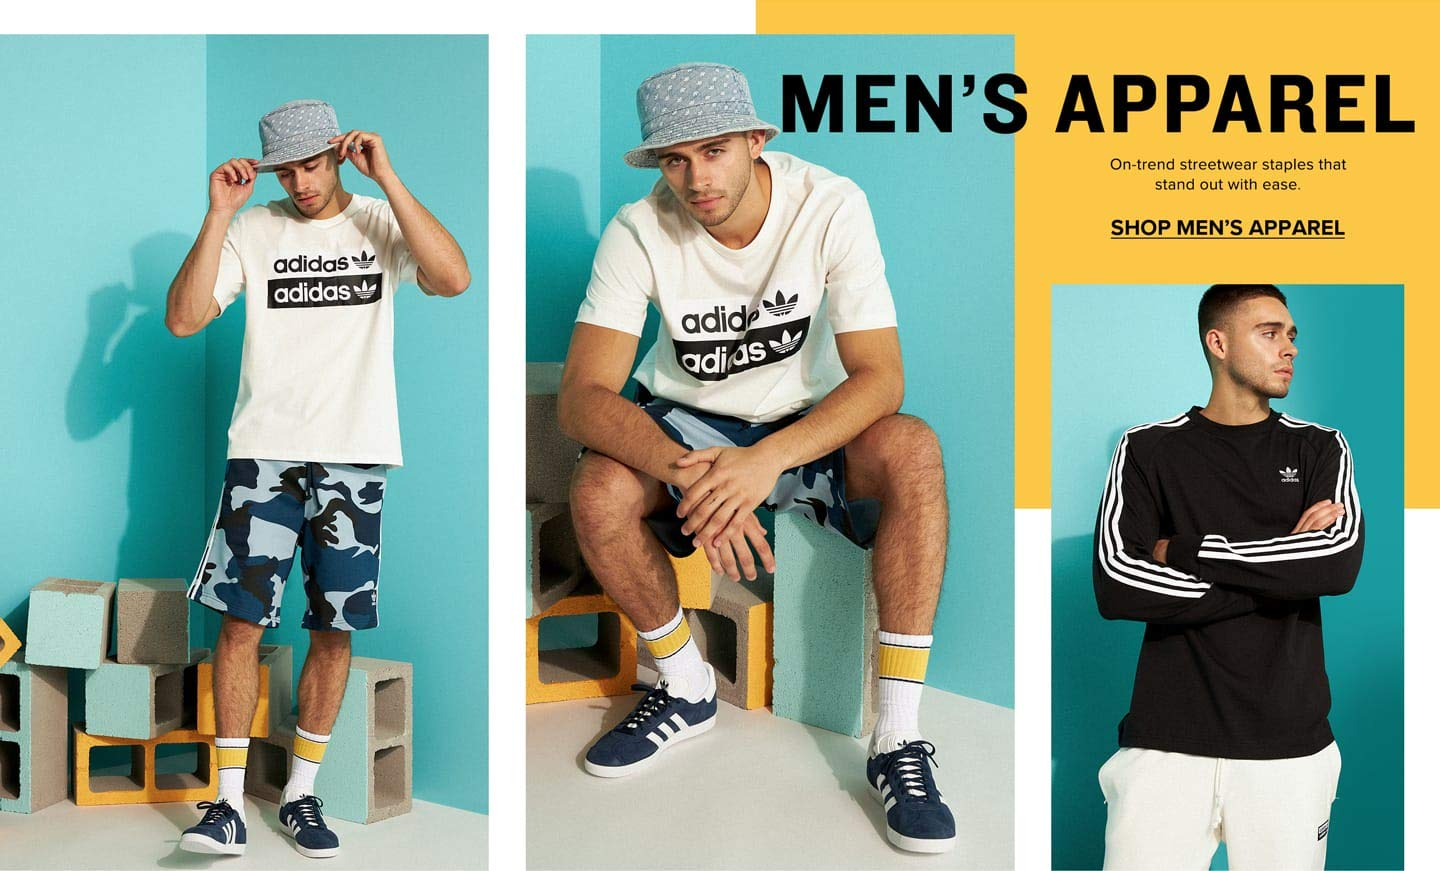 MEN'S APPAREL. On-trend streetwear staples that standout with ease. SHOP MEN'S APPAREL.